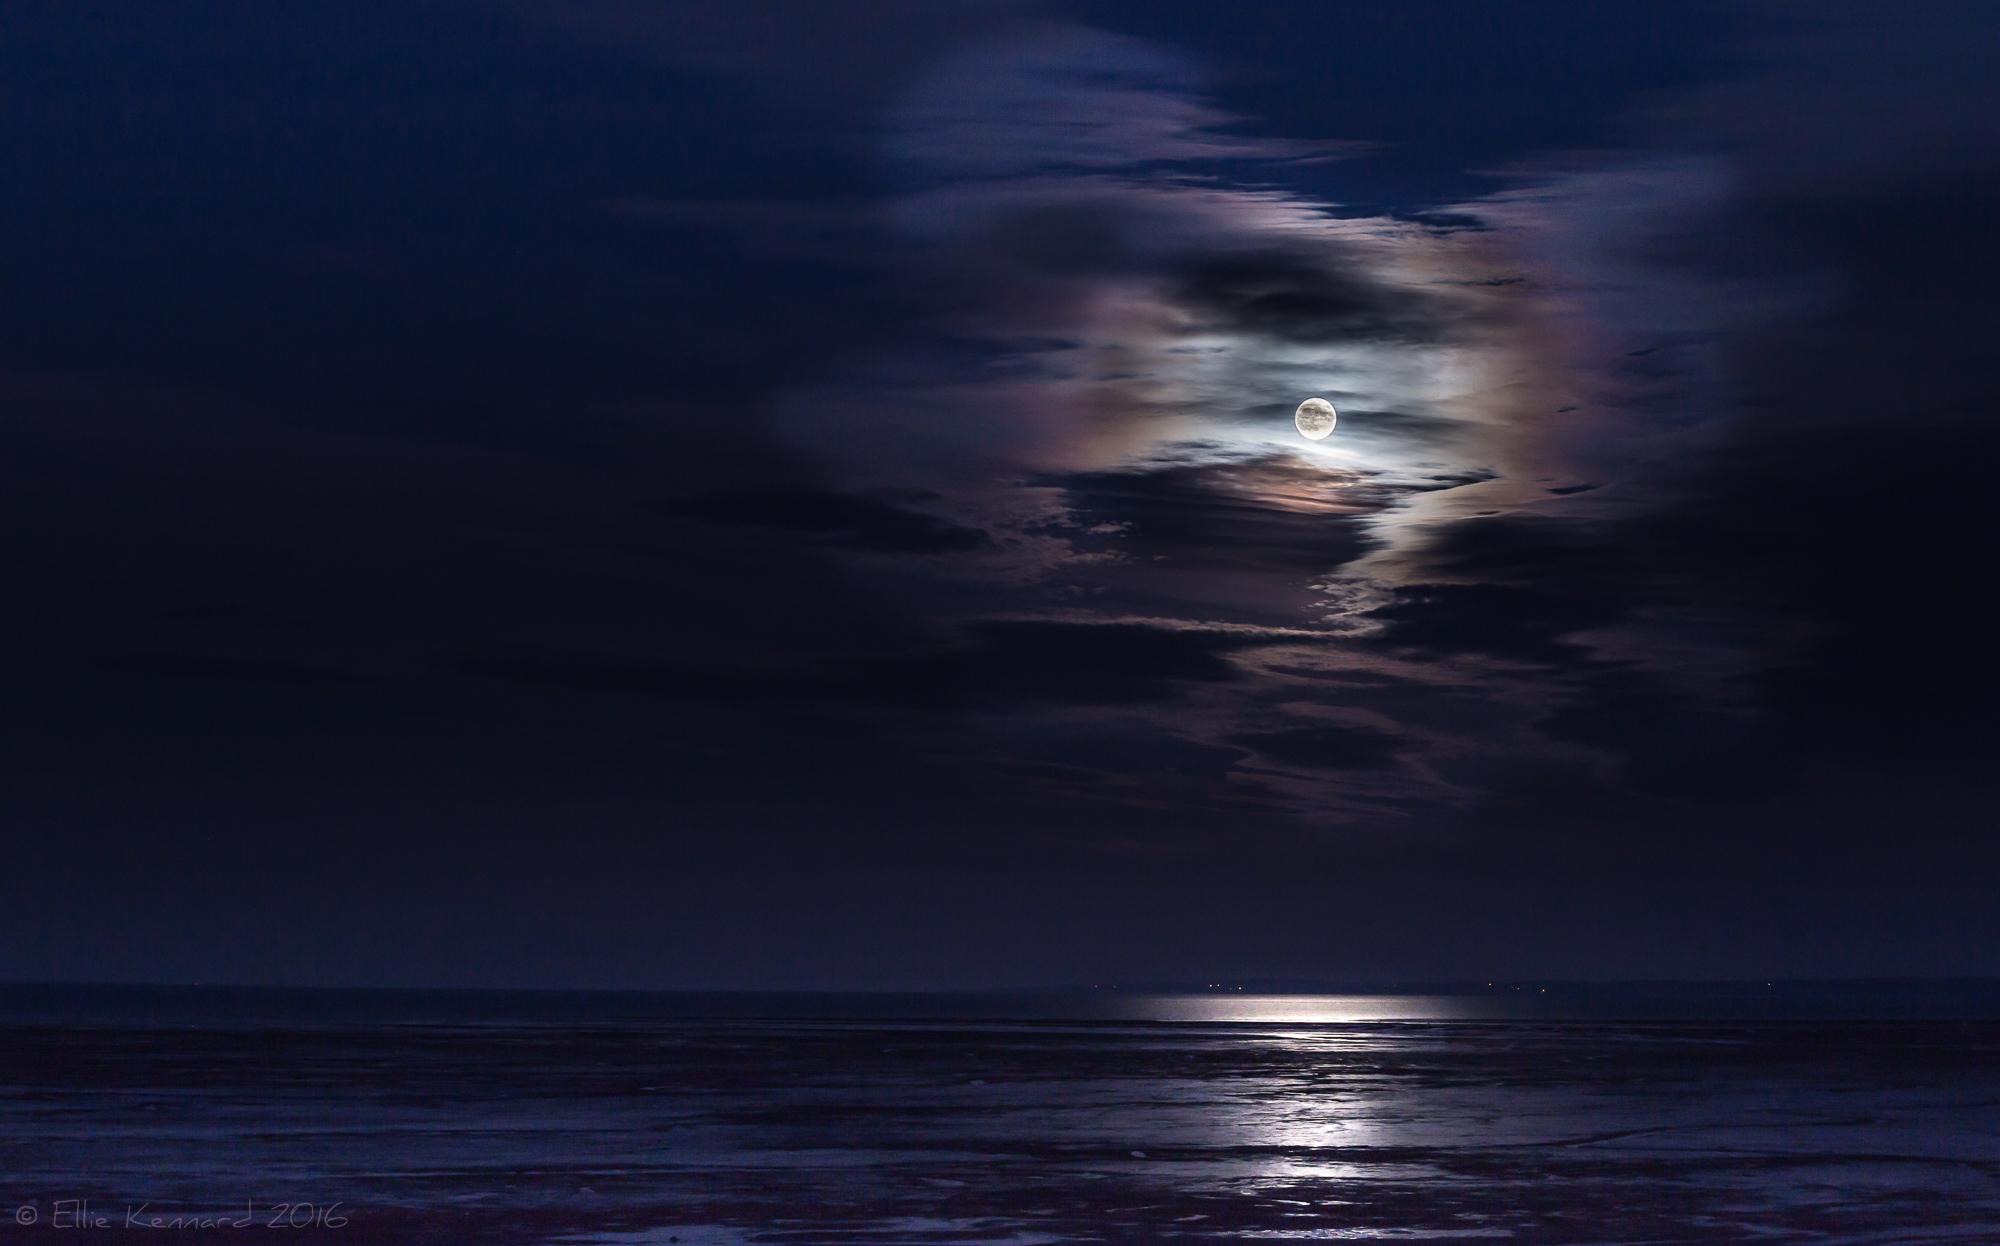 Supermoon with Clouds, Minas Basin, November - Ellie Kennard 2016